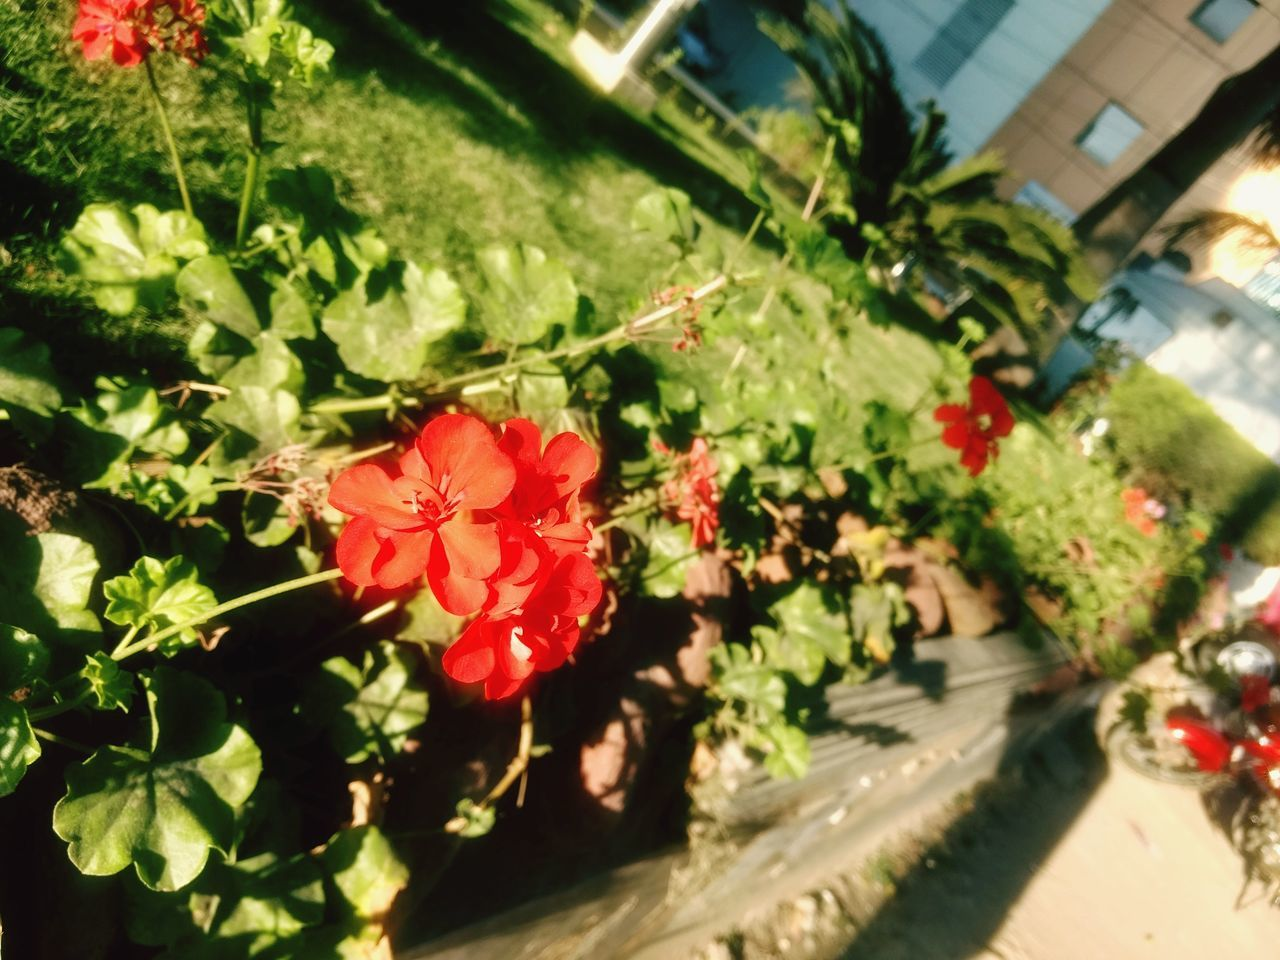 flower, growth, plant, nature, beauty in nature, red, fragility, outdoors, petal, no people, flower head, day, blooming, freshness, building exterior, close-up